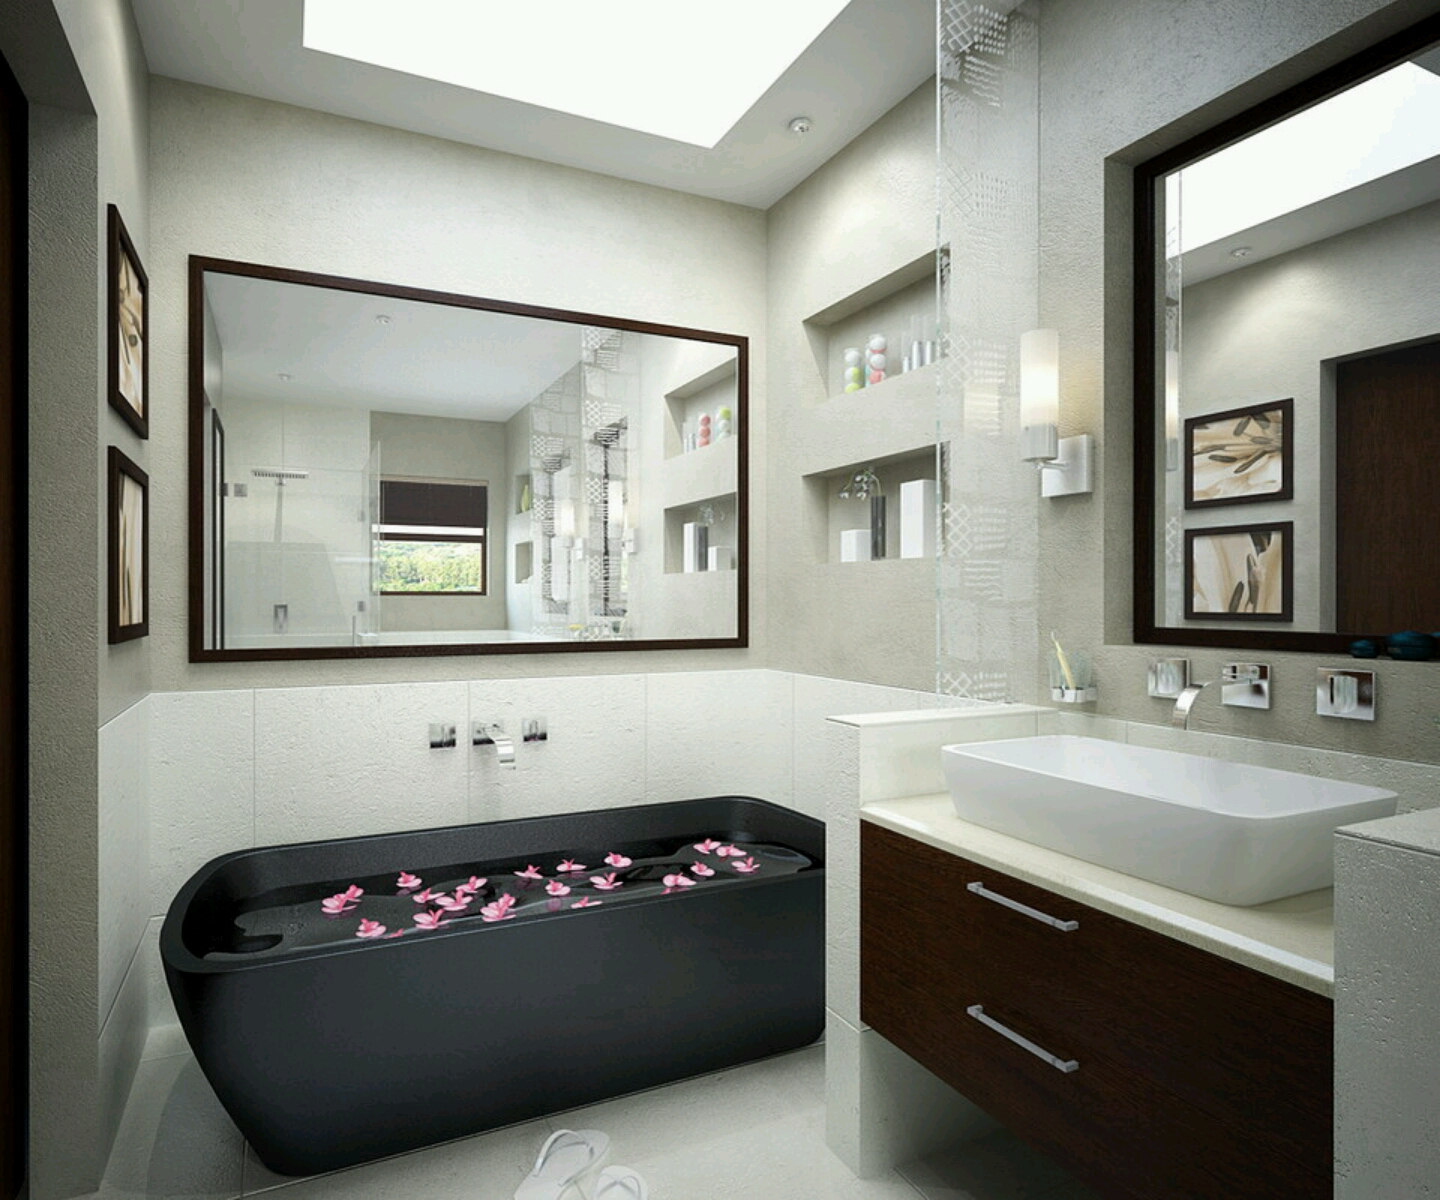 Modern bathrooms cabinets designs furniture gallery for Bathroom designs gallery